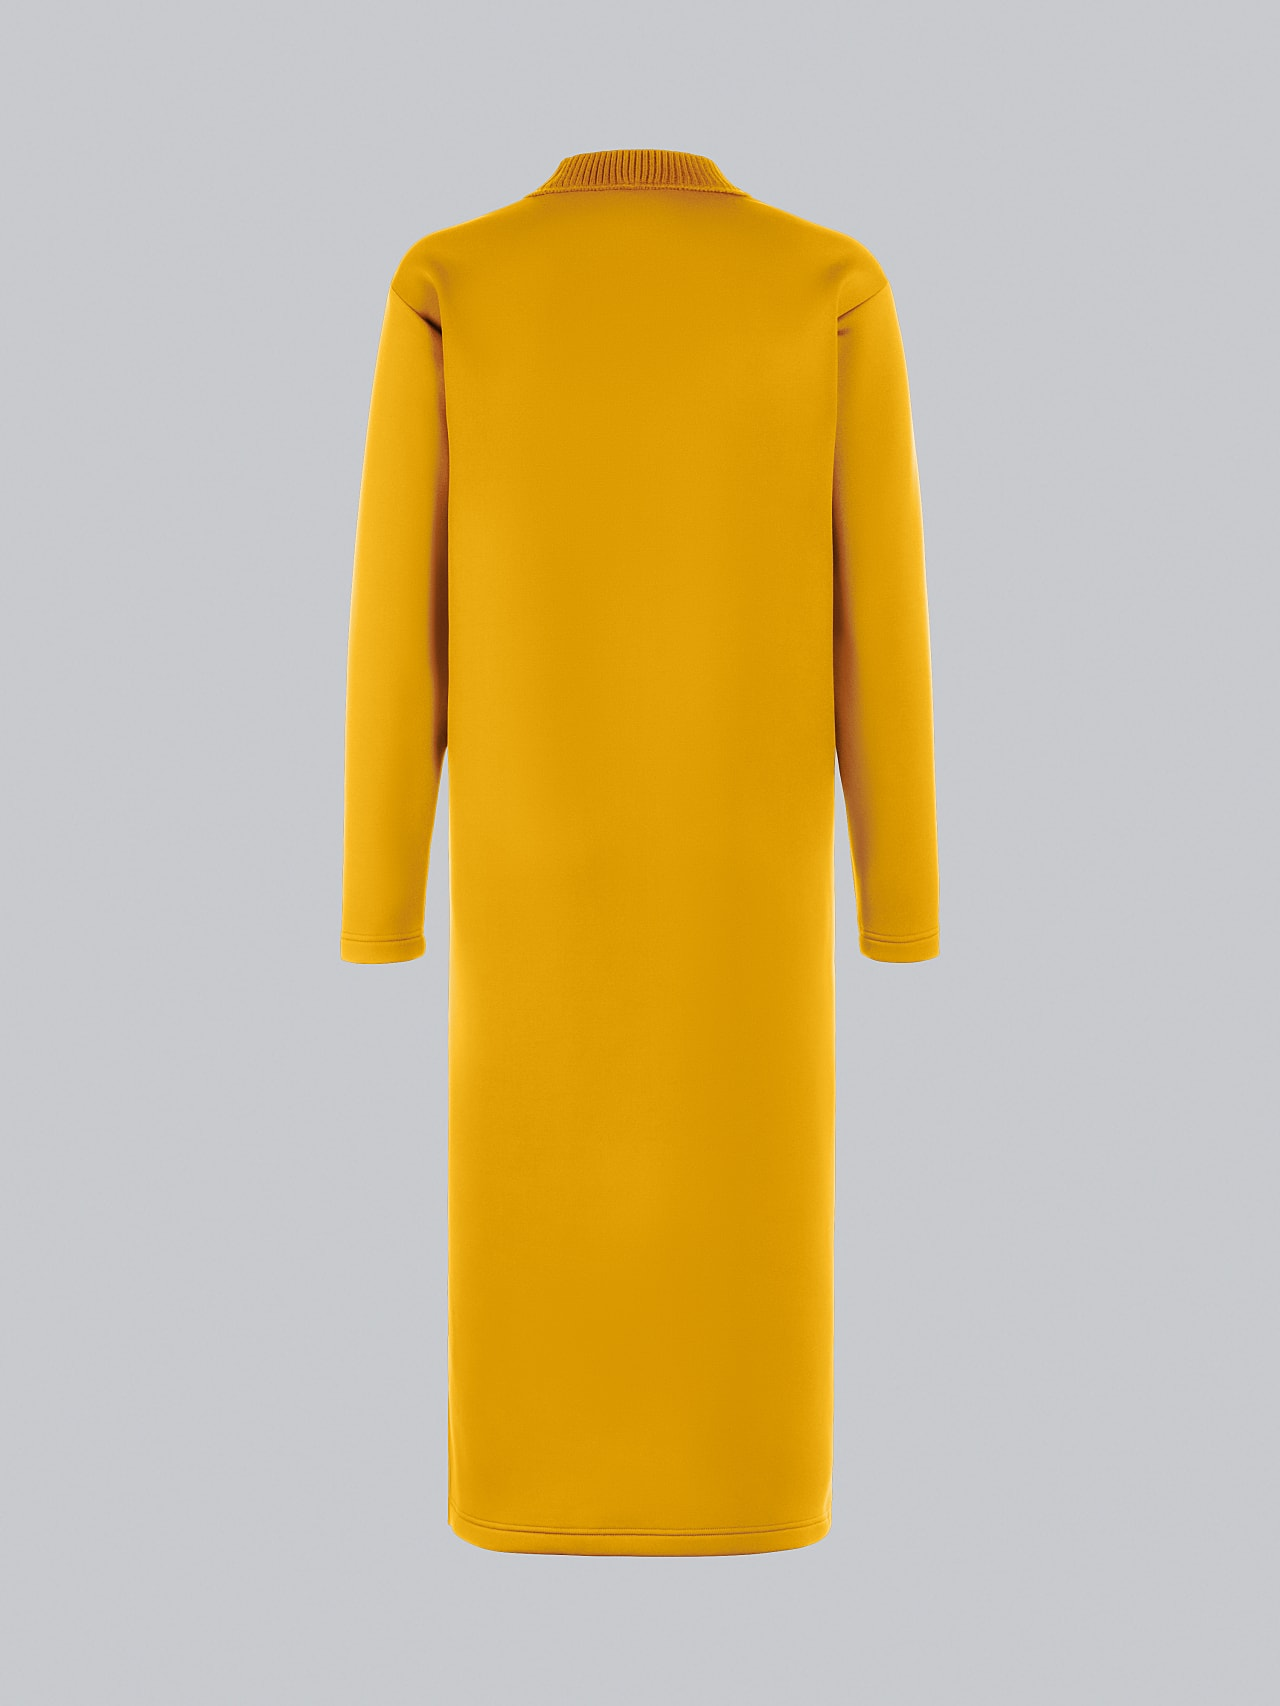 SINLE V1.Y5.02 Technical Spacer Maxi Dress yellow Left Alpha Tauri